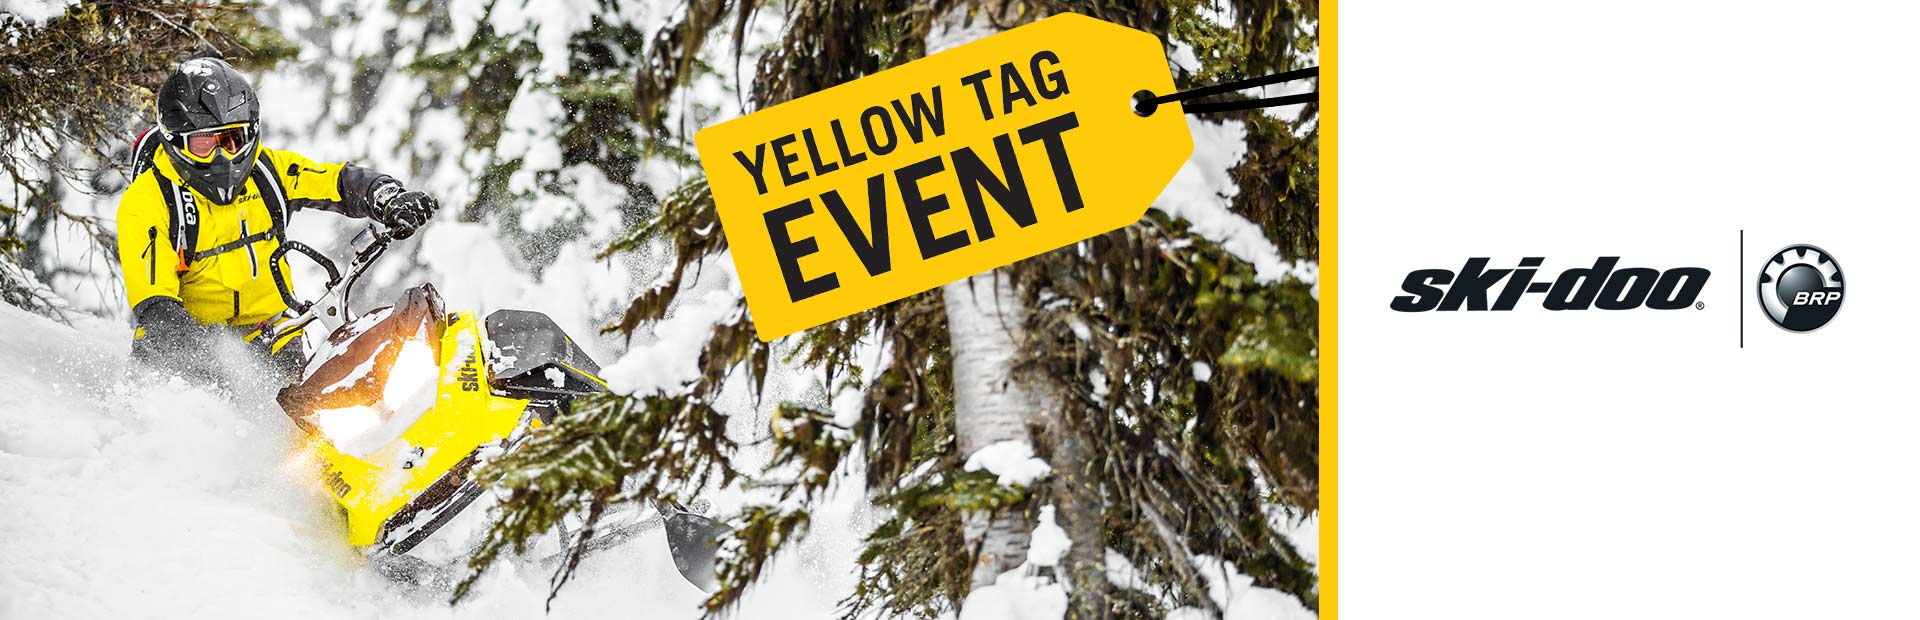 Ski-Doo: Yellow Tag Event (Ski-Doo)